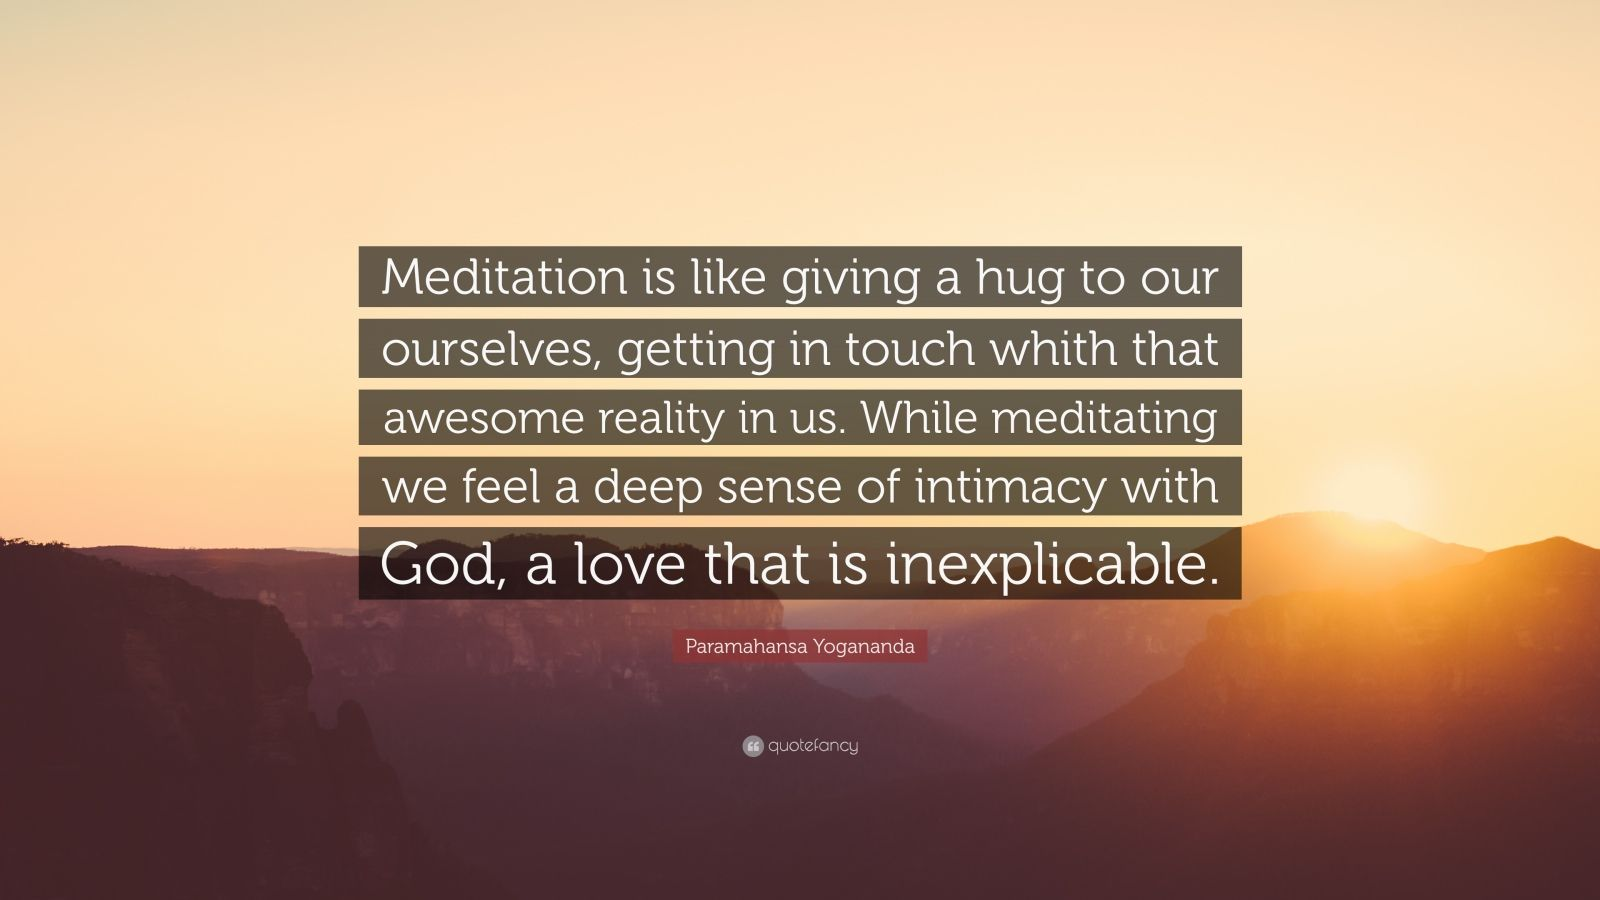 """Paramahansa Yogananda Quote: """"Meditation is like giving a hug to our ourselves, getting in touch whith that awesome reality in us. While meditating we feel a deep sense of intimacy with God, a love that is inexplicable."""""""